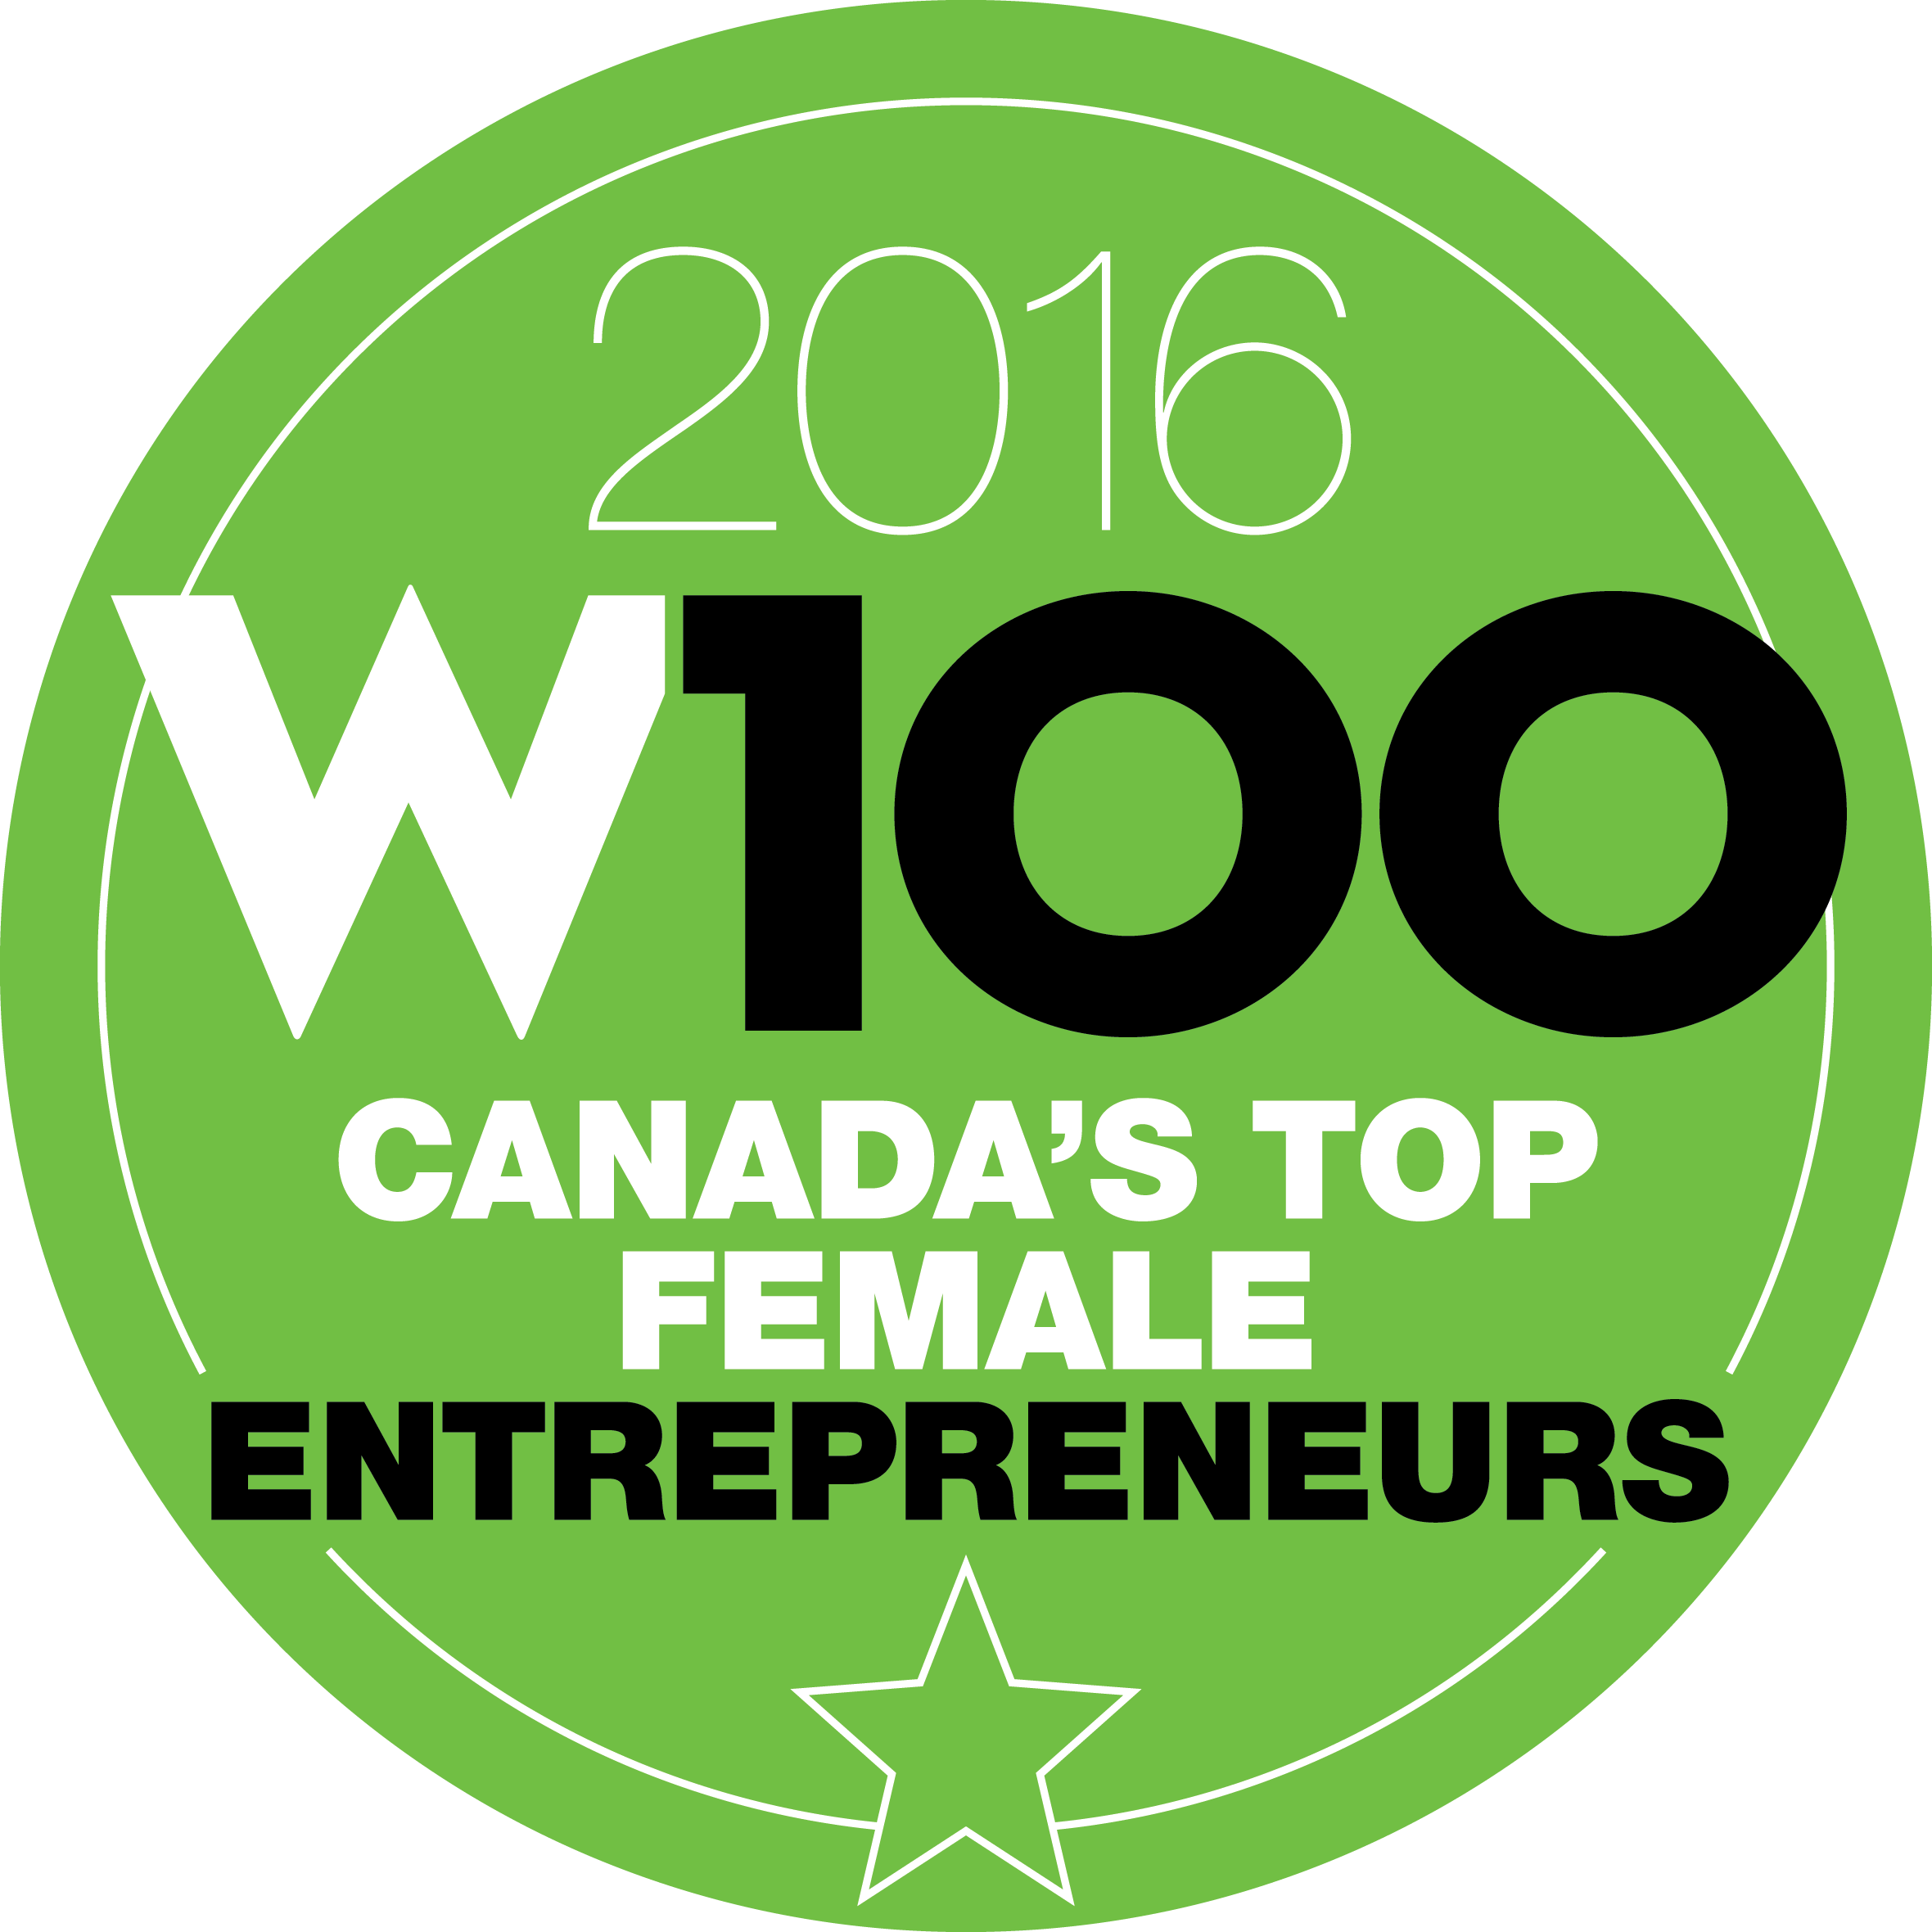 W100 2016 - Canada's Top Female Entrepreneurs